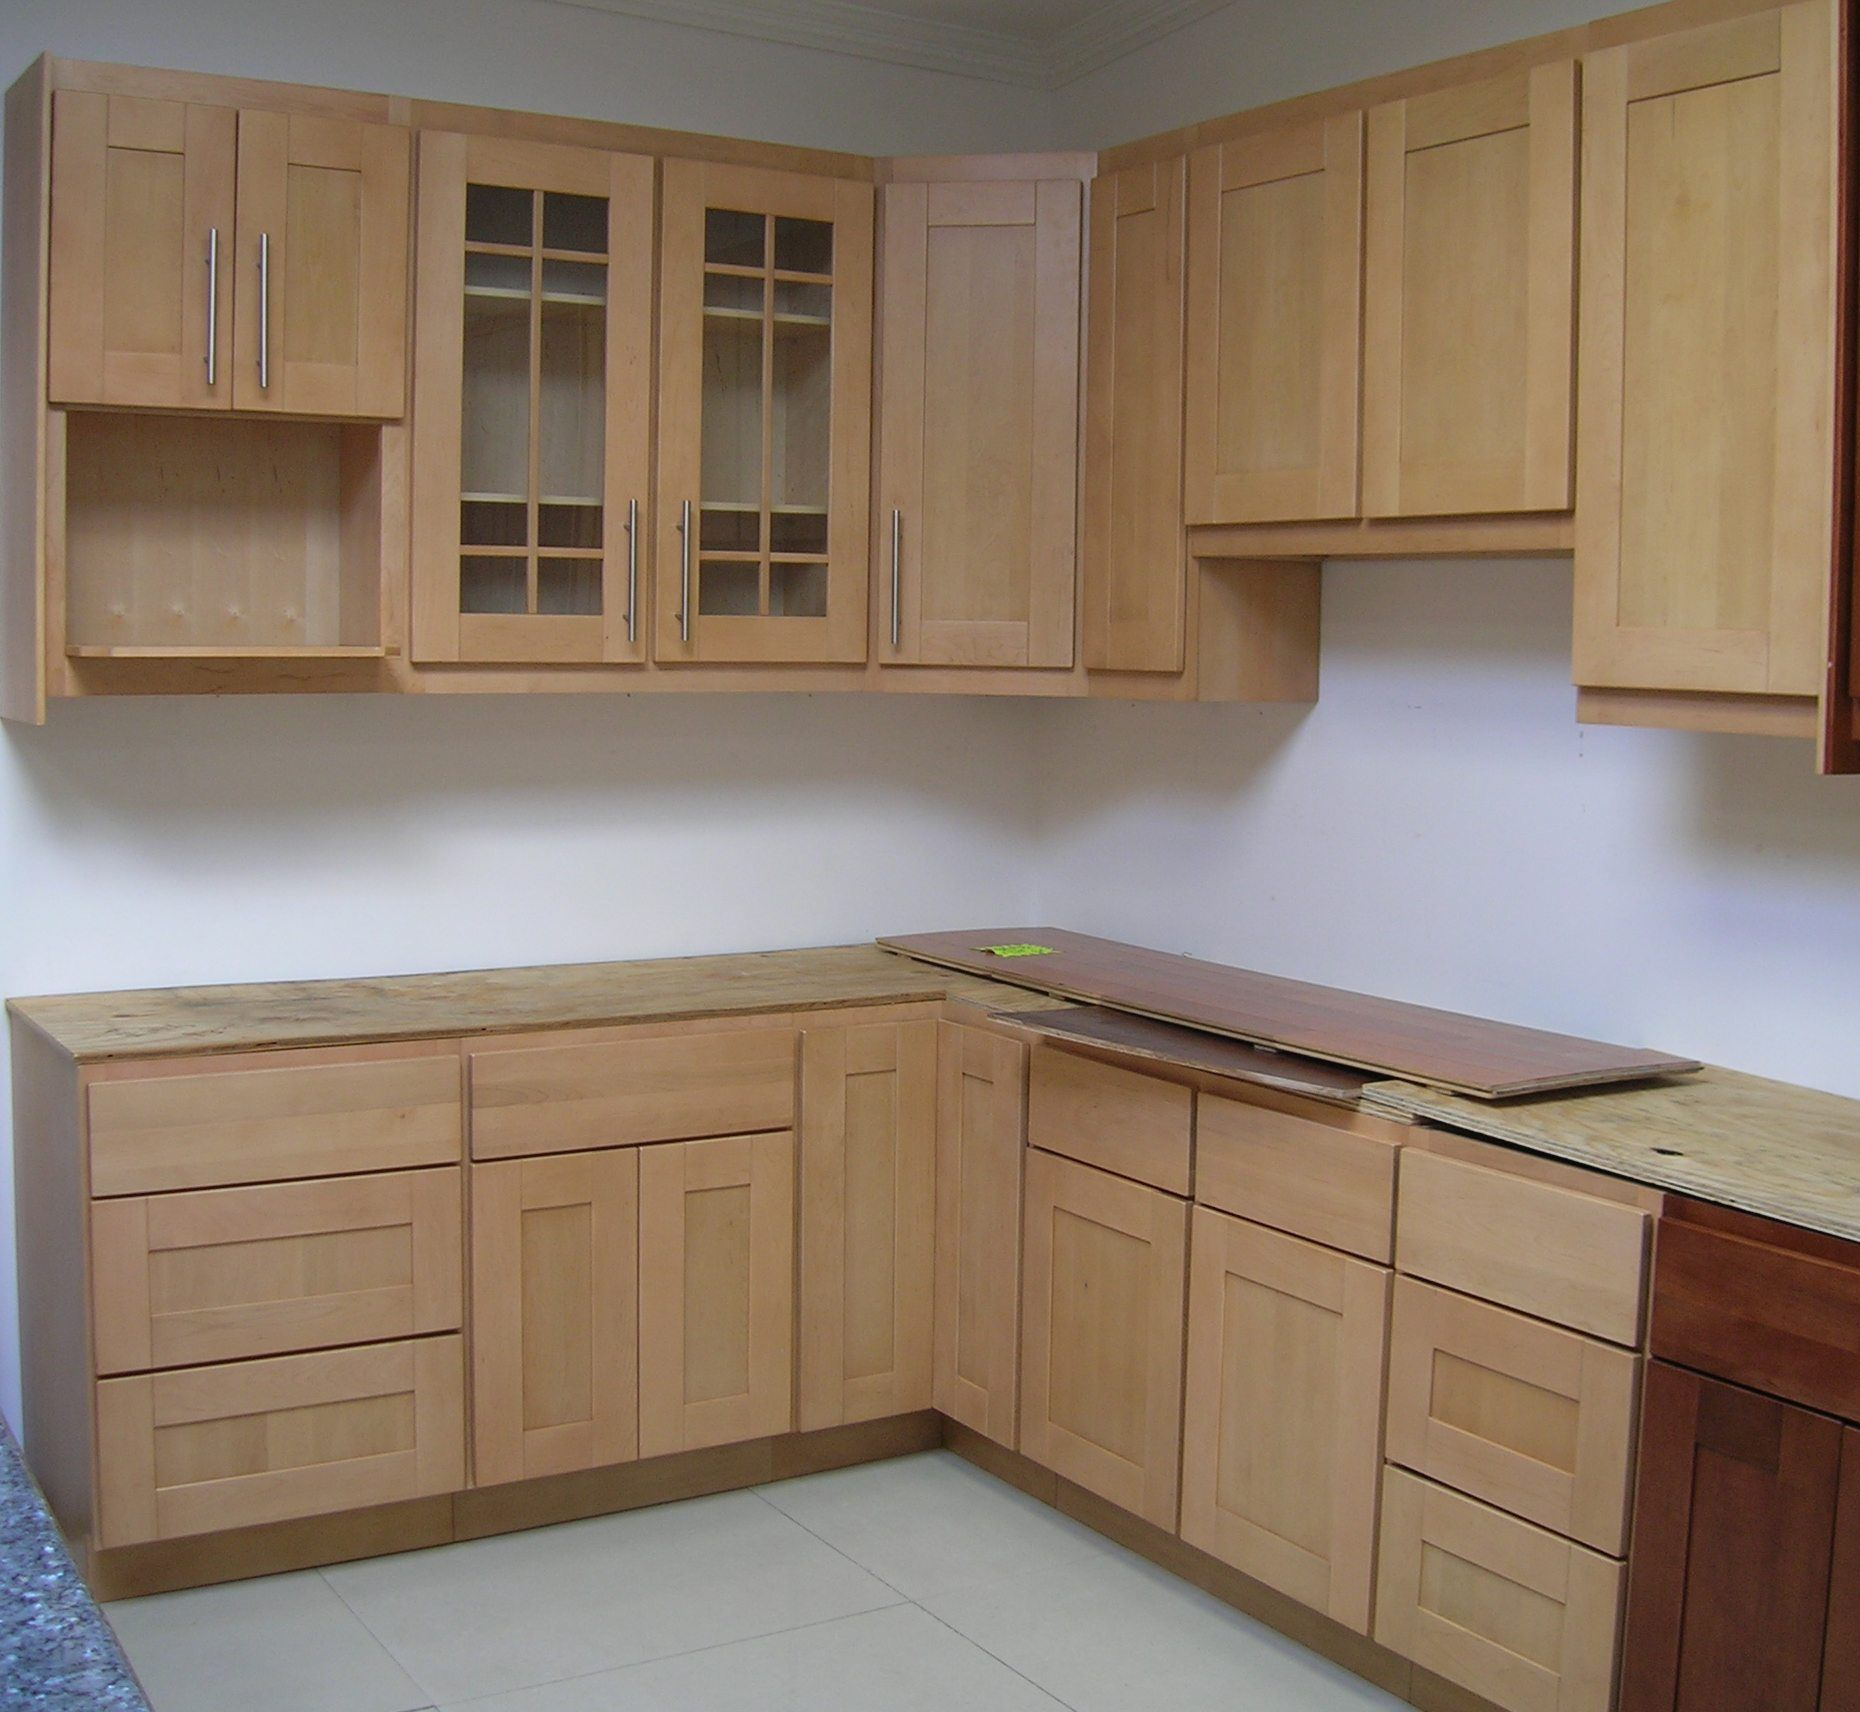 Kitchen Remodel Youngstown Oh: Remodeling Kitchen Cabinets To Stylize Your Kitchen